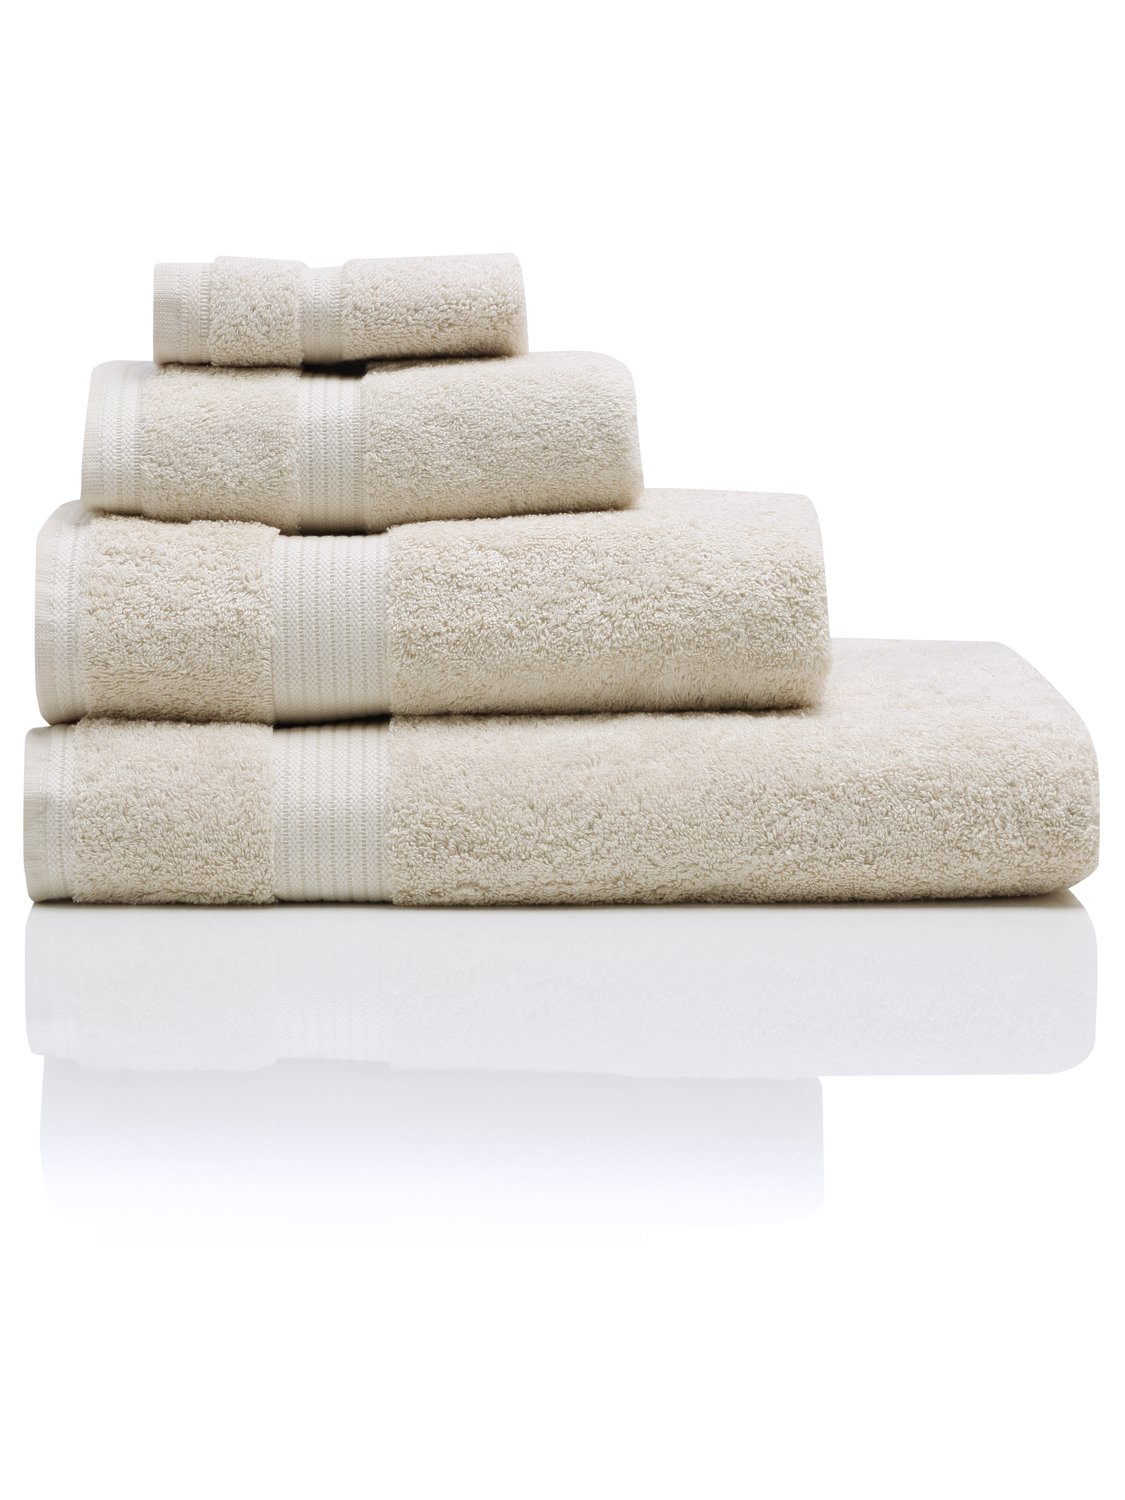 100% combed cotton 580gsm luxury soft and absorbent bath sheet  - stone